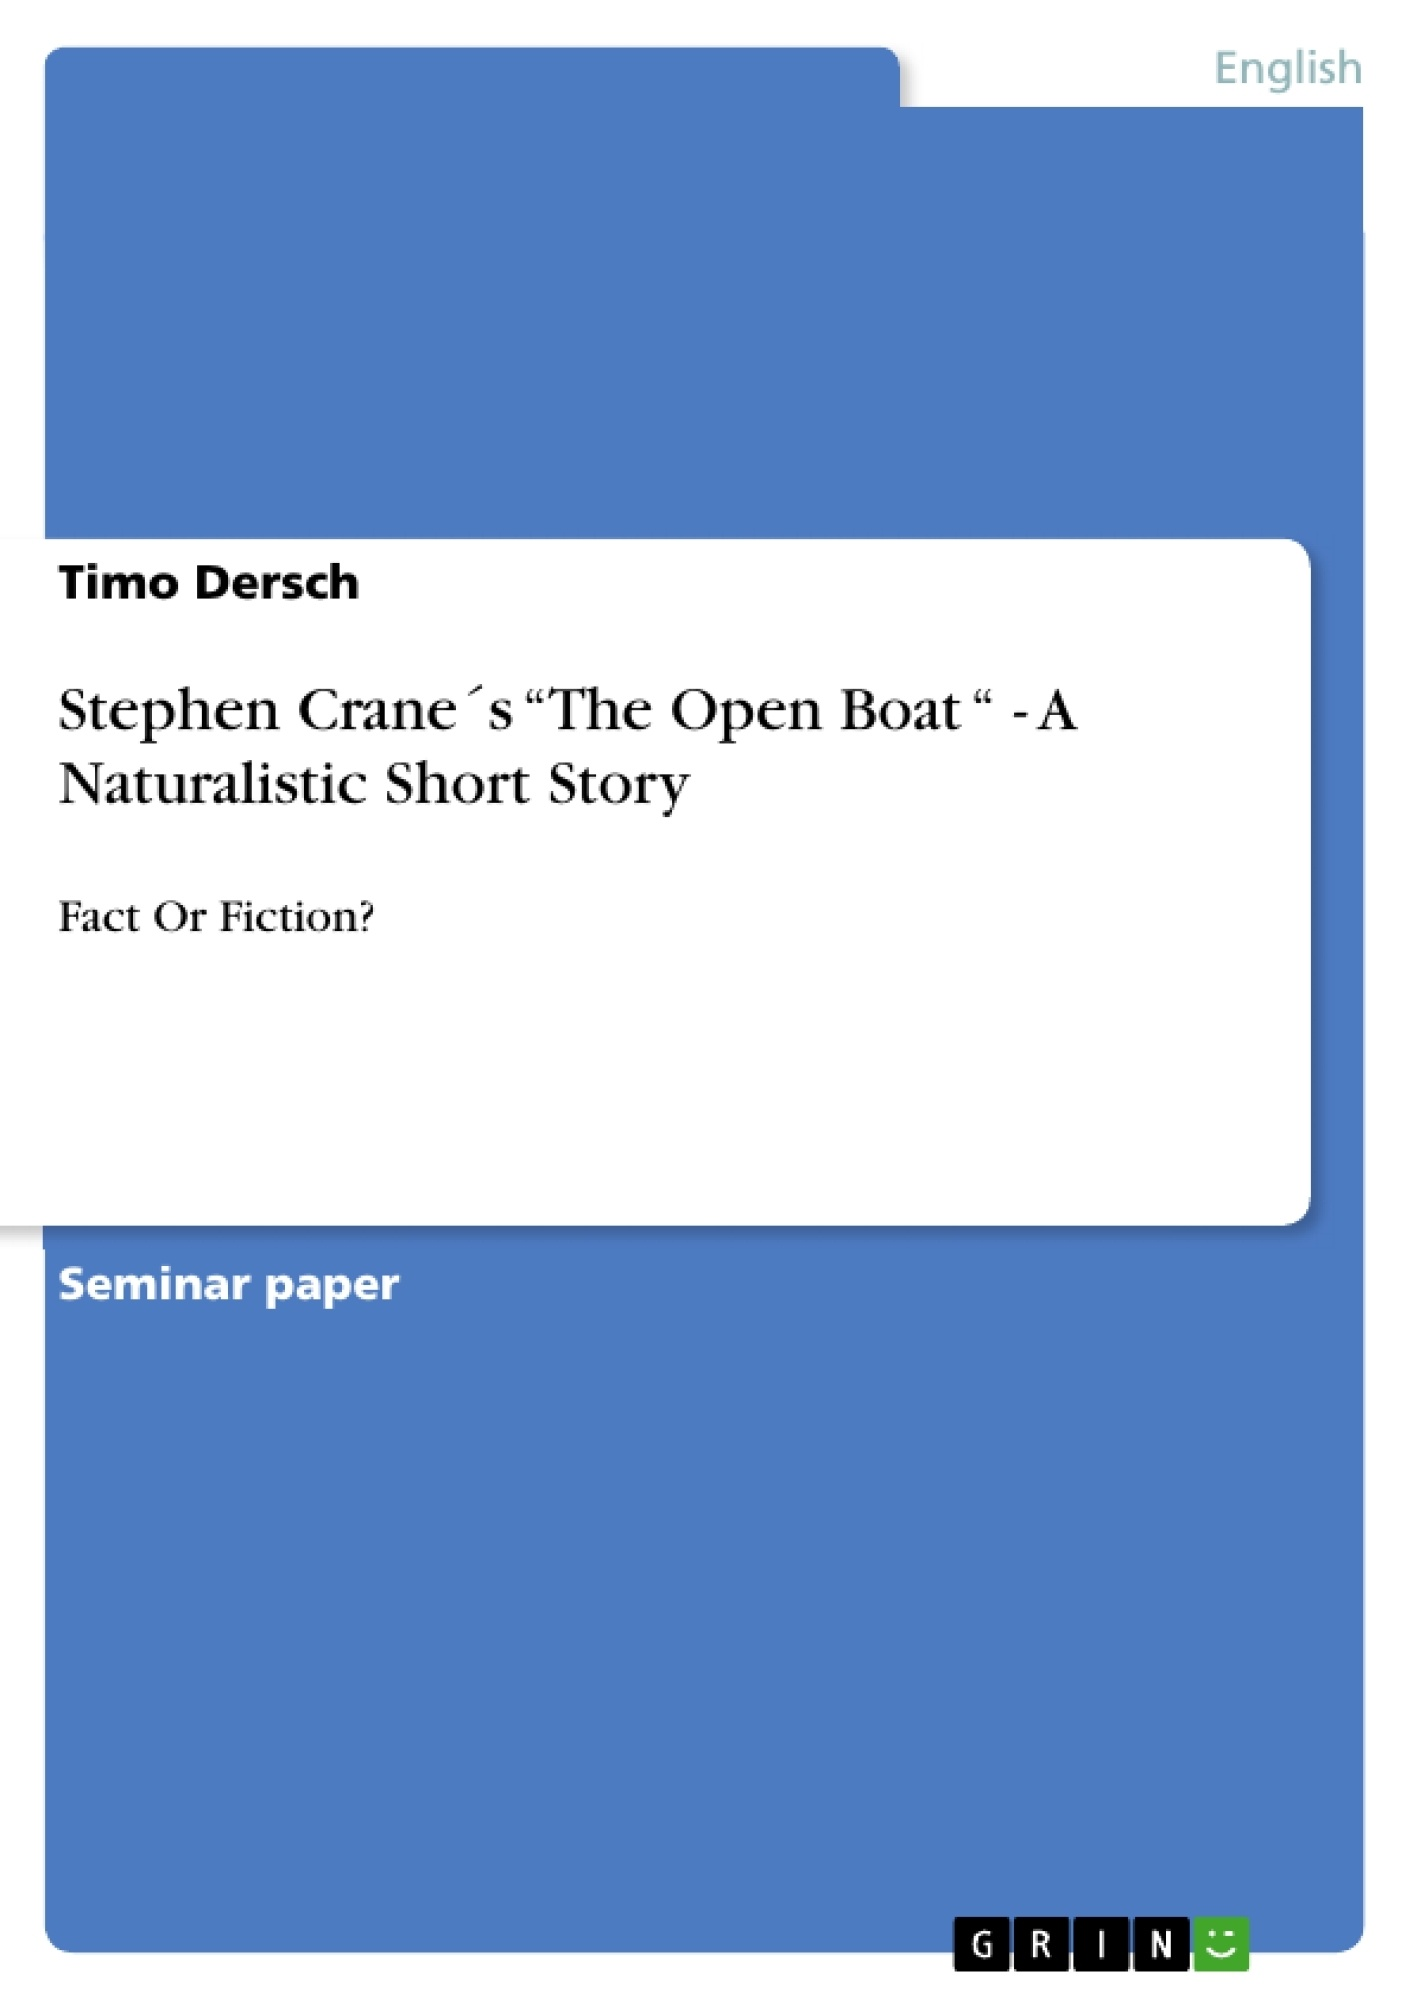 thesis for the open boat by stephen crane Read the open boat - stephen crane free essay and over 88,000 other research documents the open boat - stephen crane the open boat - stephen crane the oiler the open boat, written by stephen crane is a tale about four.